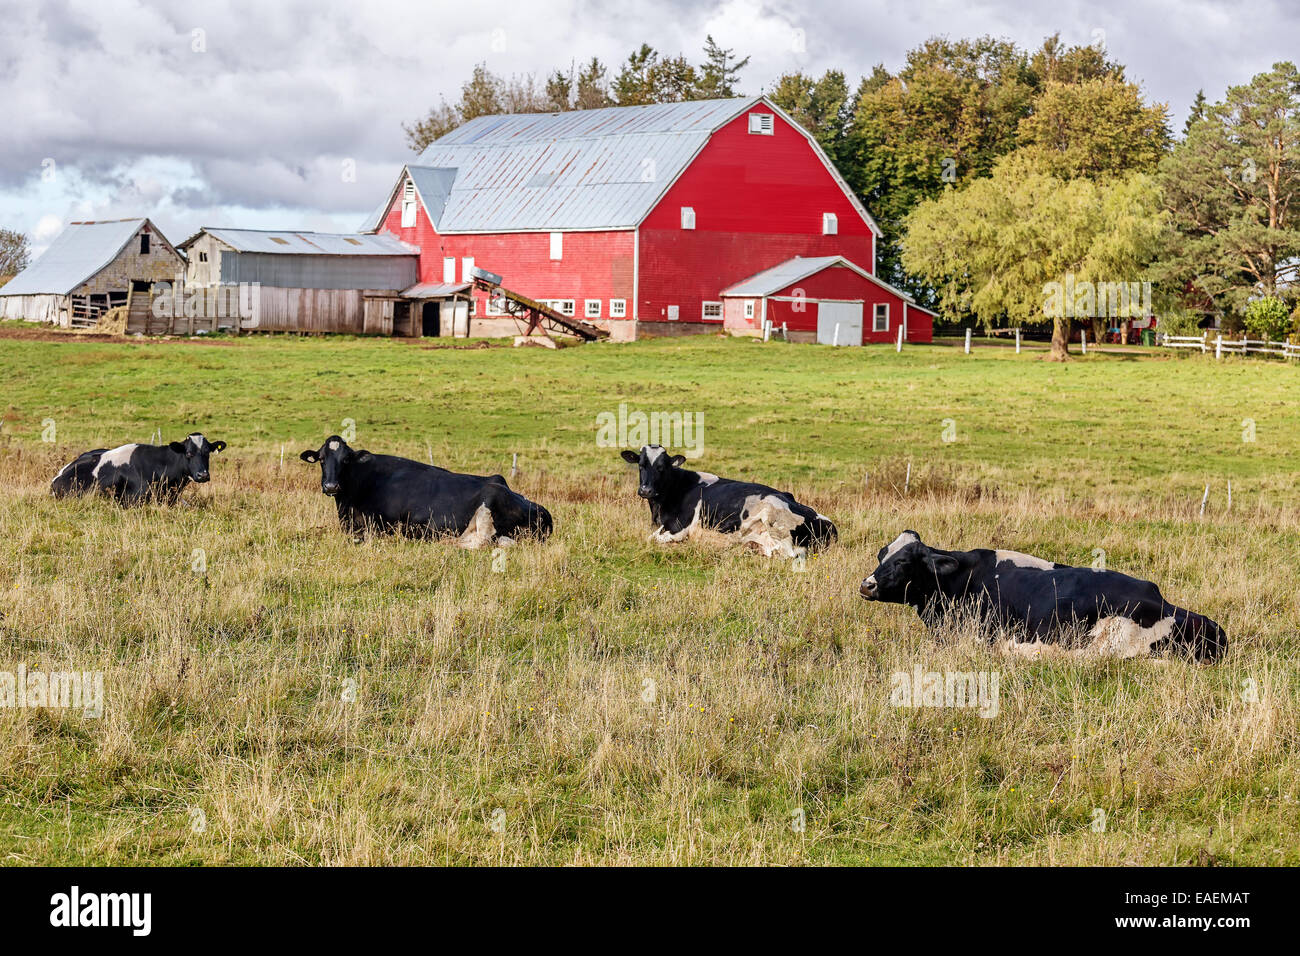 Cow on green pasture with red barn with grain silo royalty free stock - Dairy Cattle And A Red Barn On A Farm Stock Image